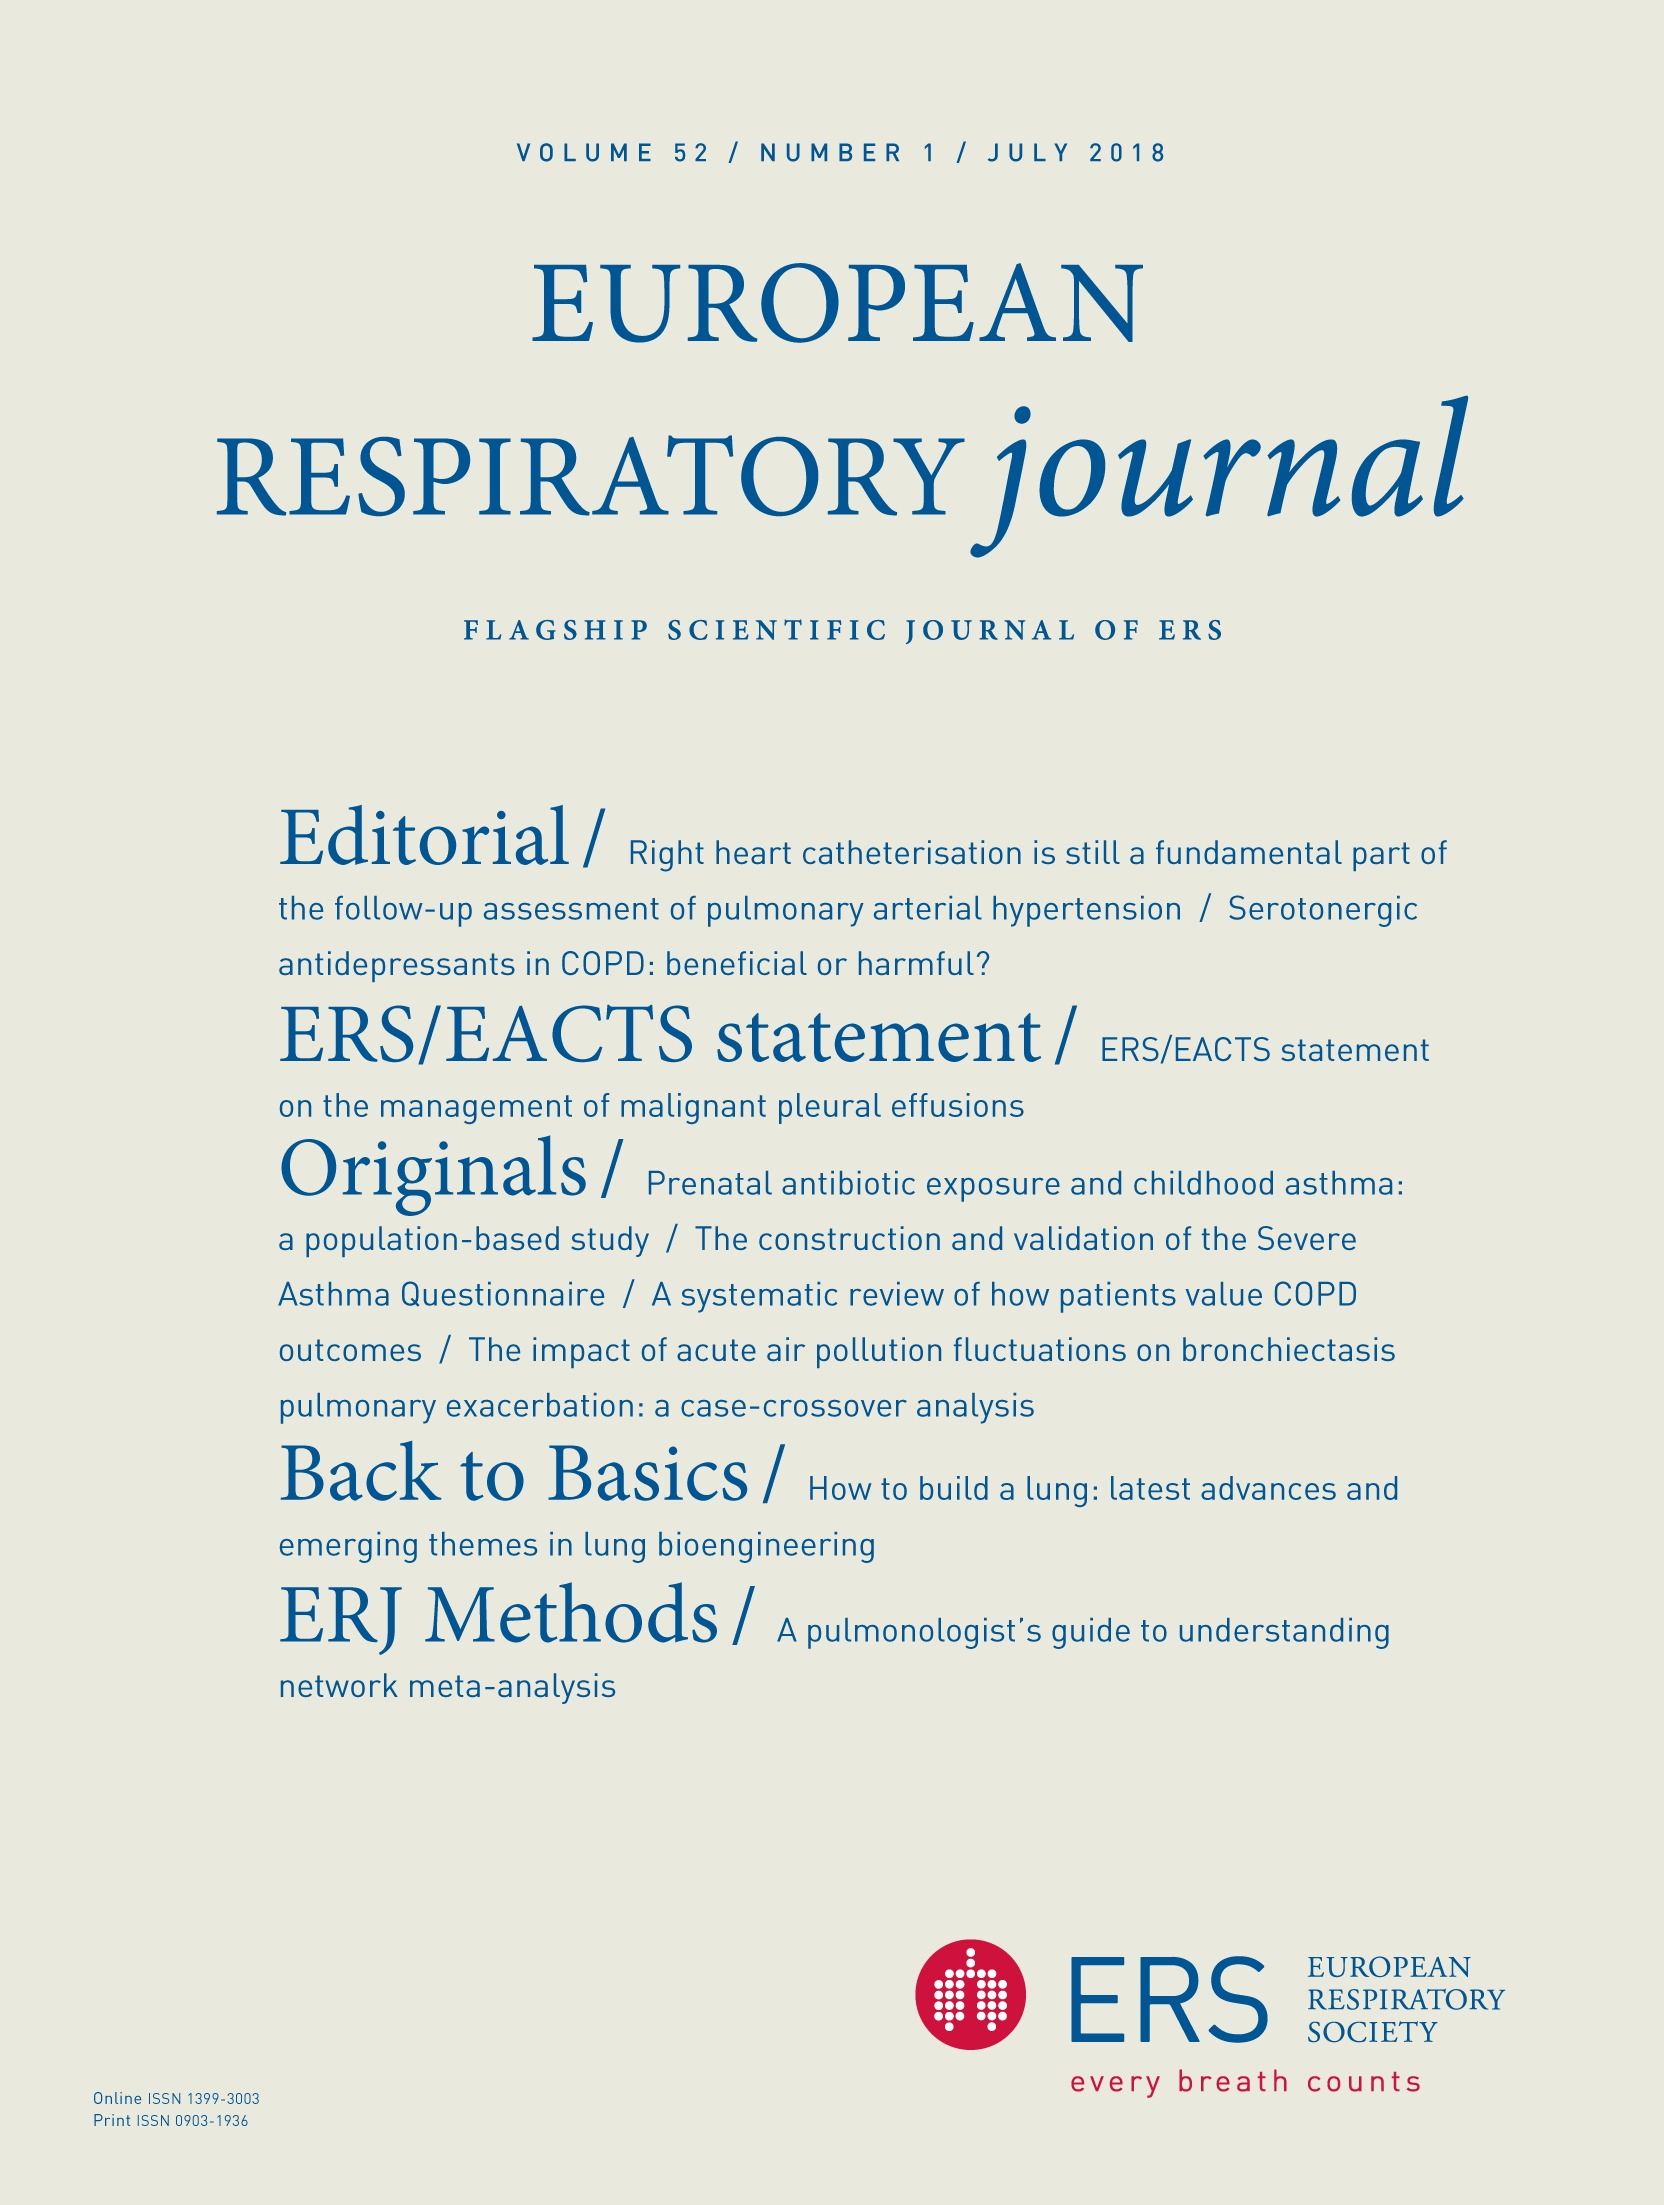 The construction and validation of the Severe Asthma Questionnaire